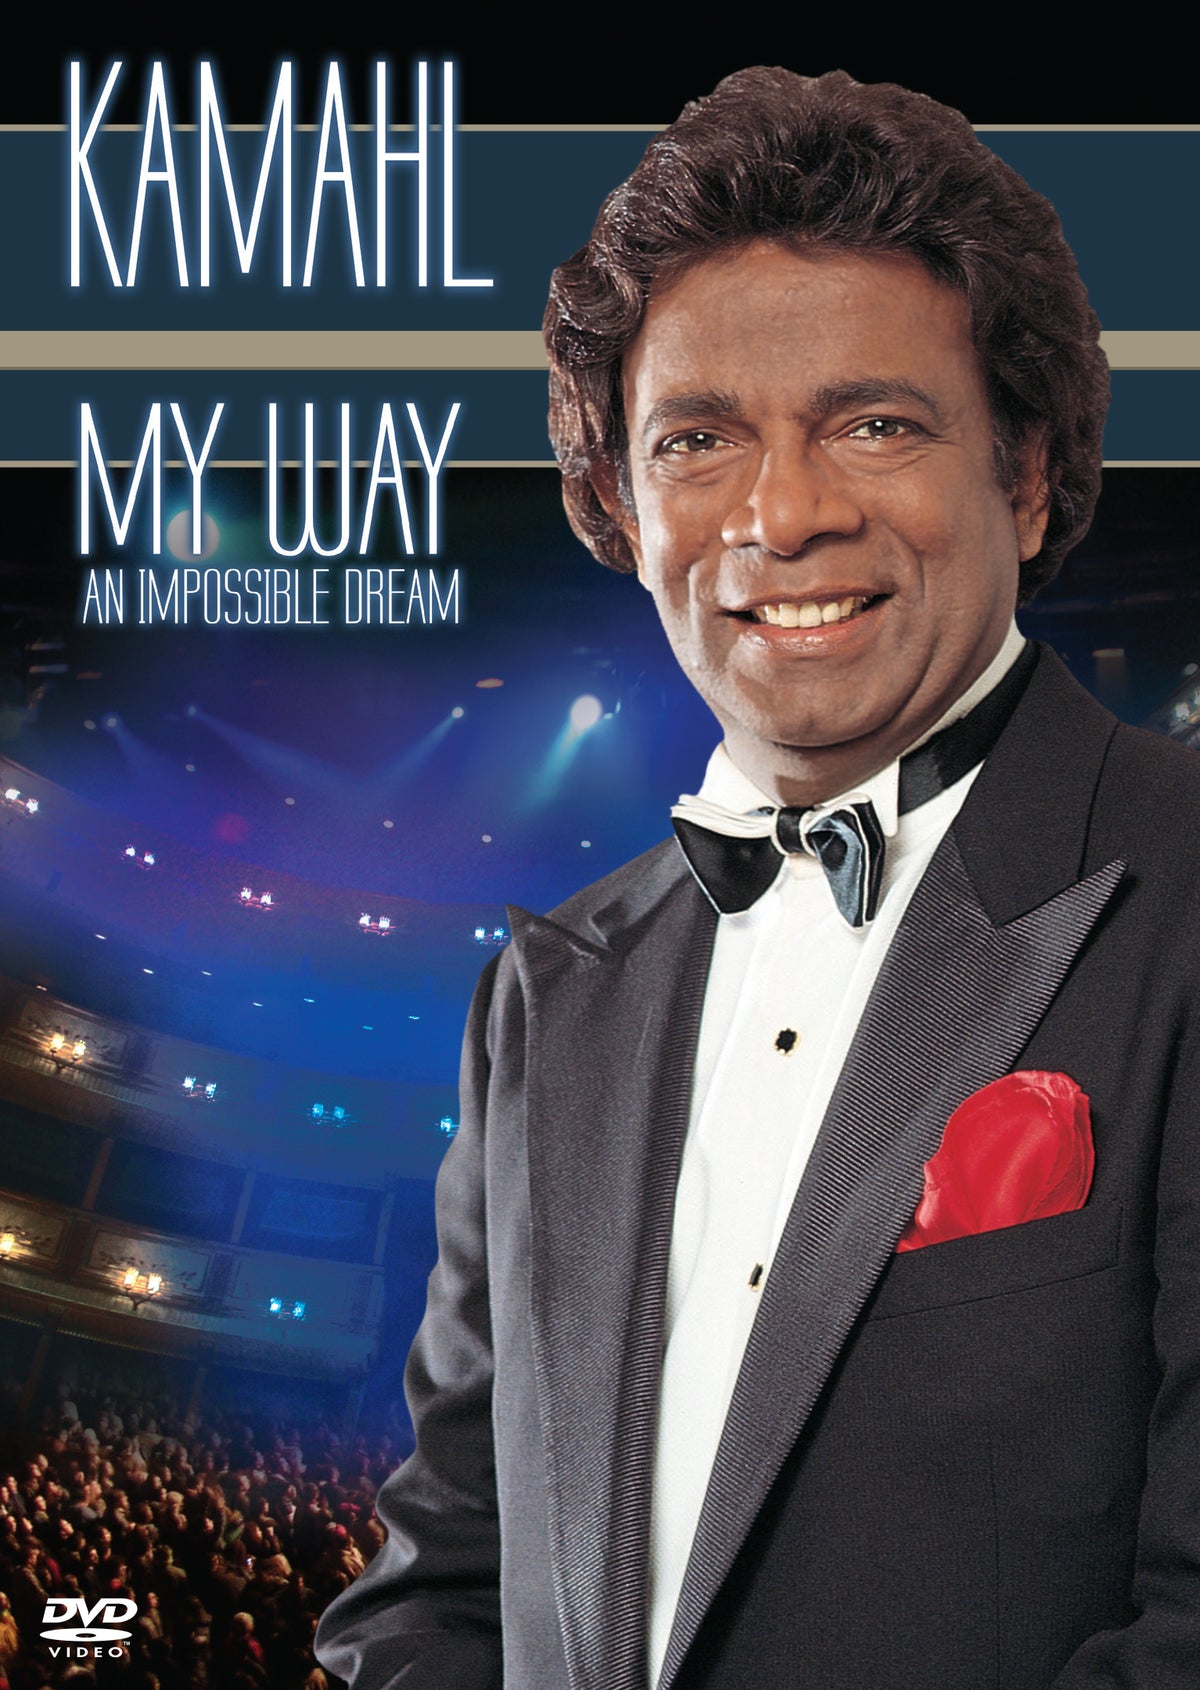 FANFARE309 - KAMAHL - MY WAY (AN IMPOSSI